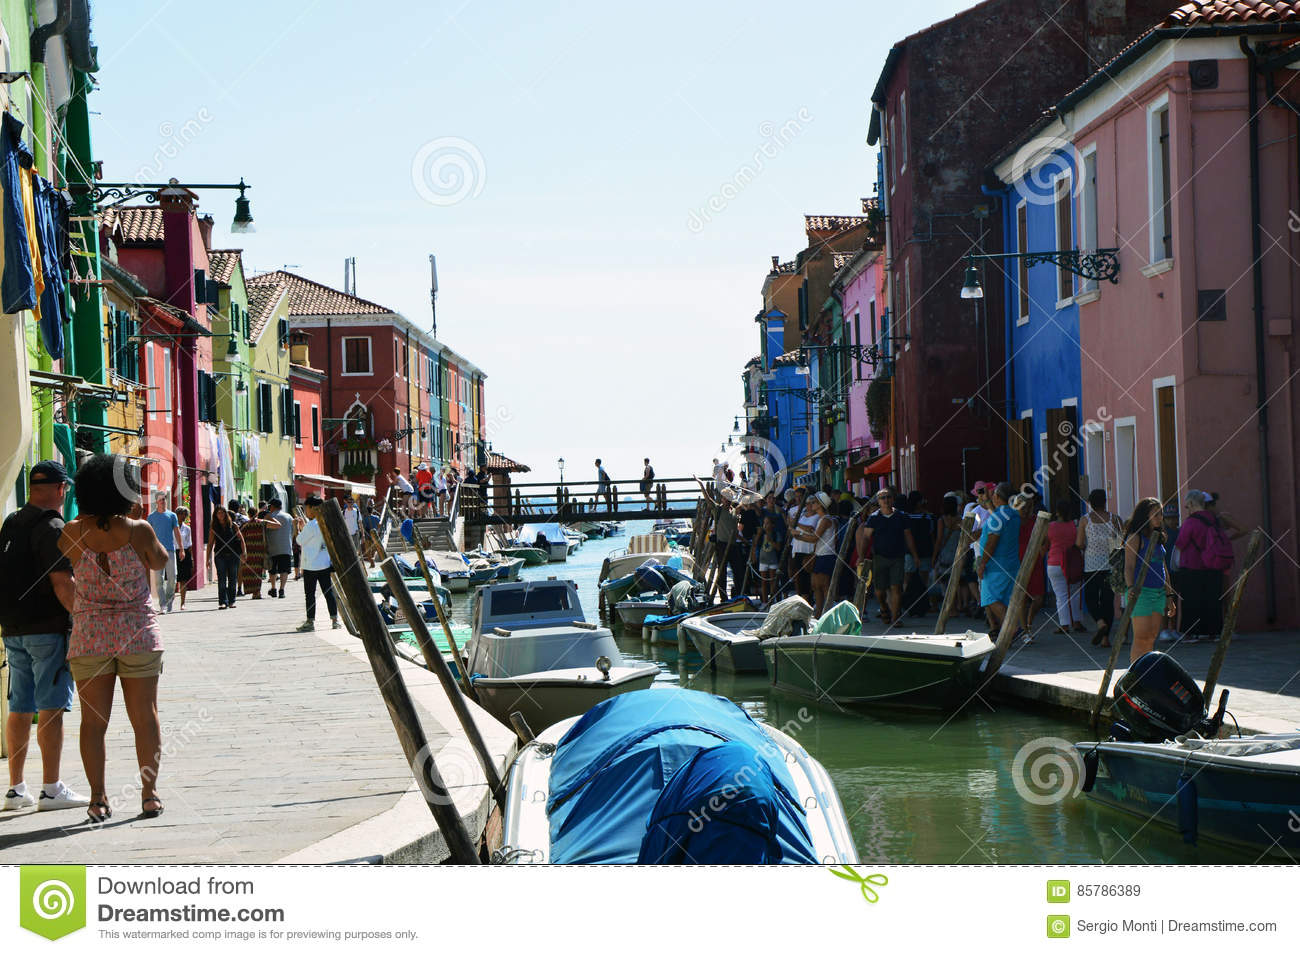 Colorful burano italy burano tourism - Venice Burano Full Of Tourists With Its Typical Colorful Houses Boats And Bridge On The